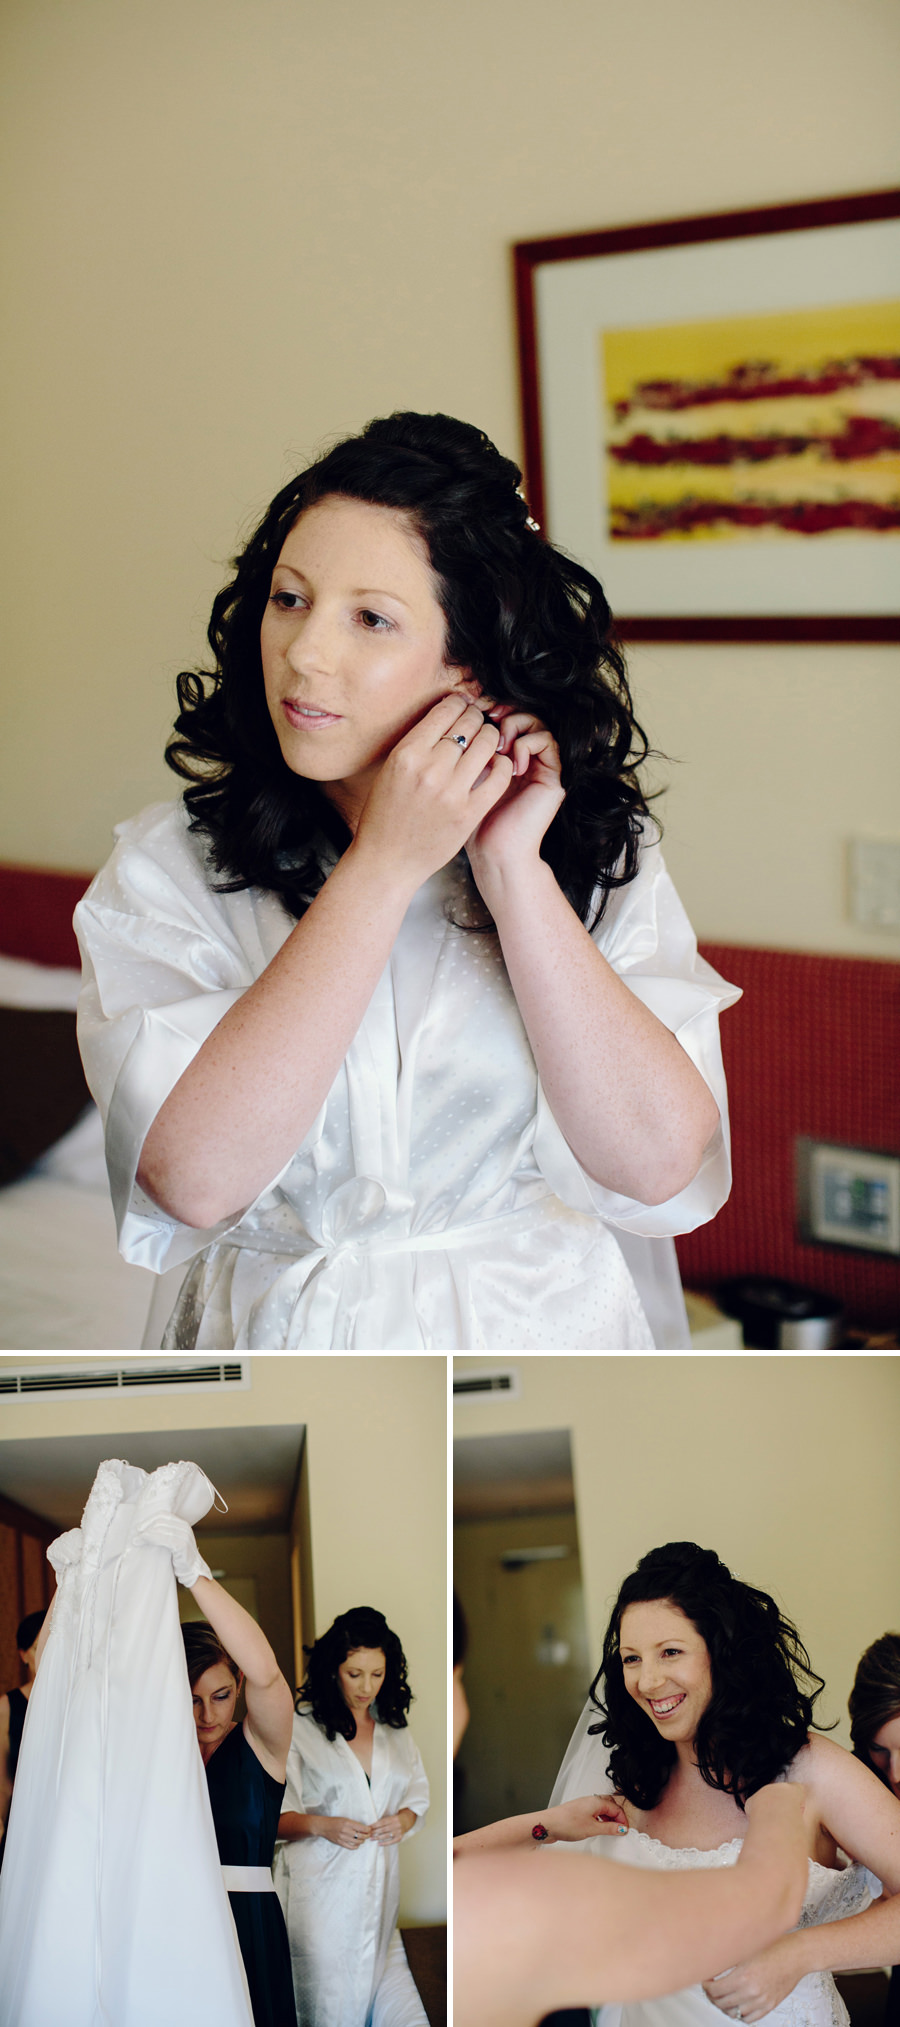 Northern Territory Wedding Photography: Bride getting dressed